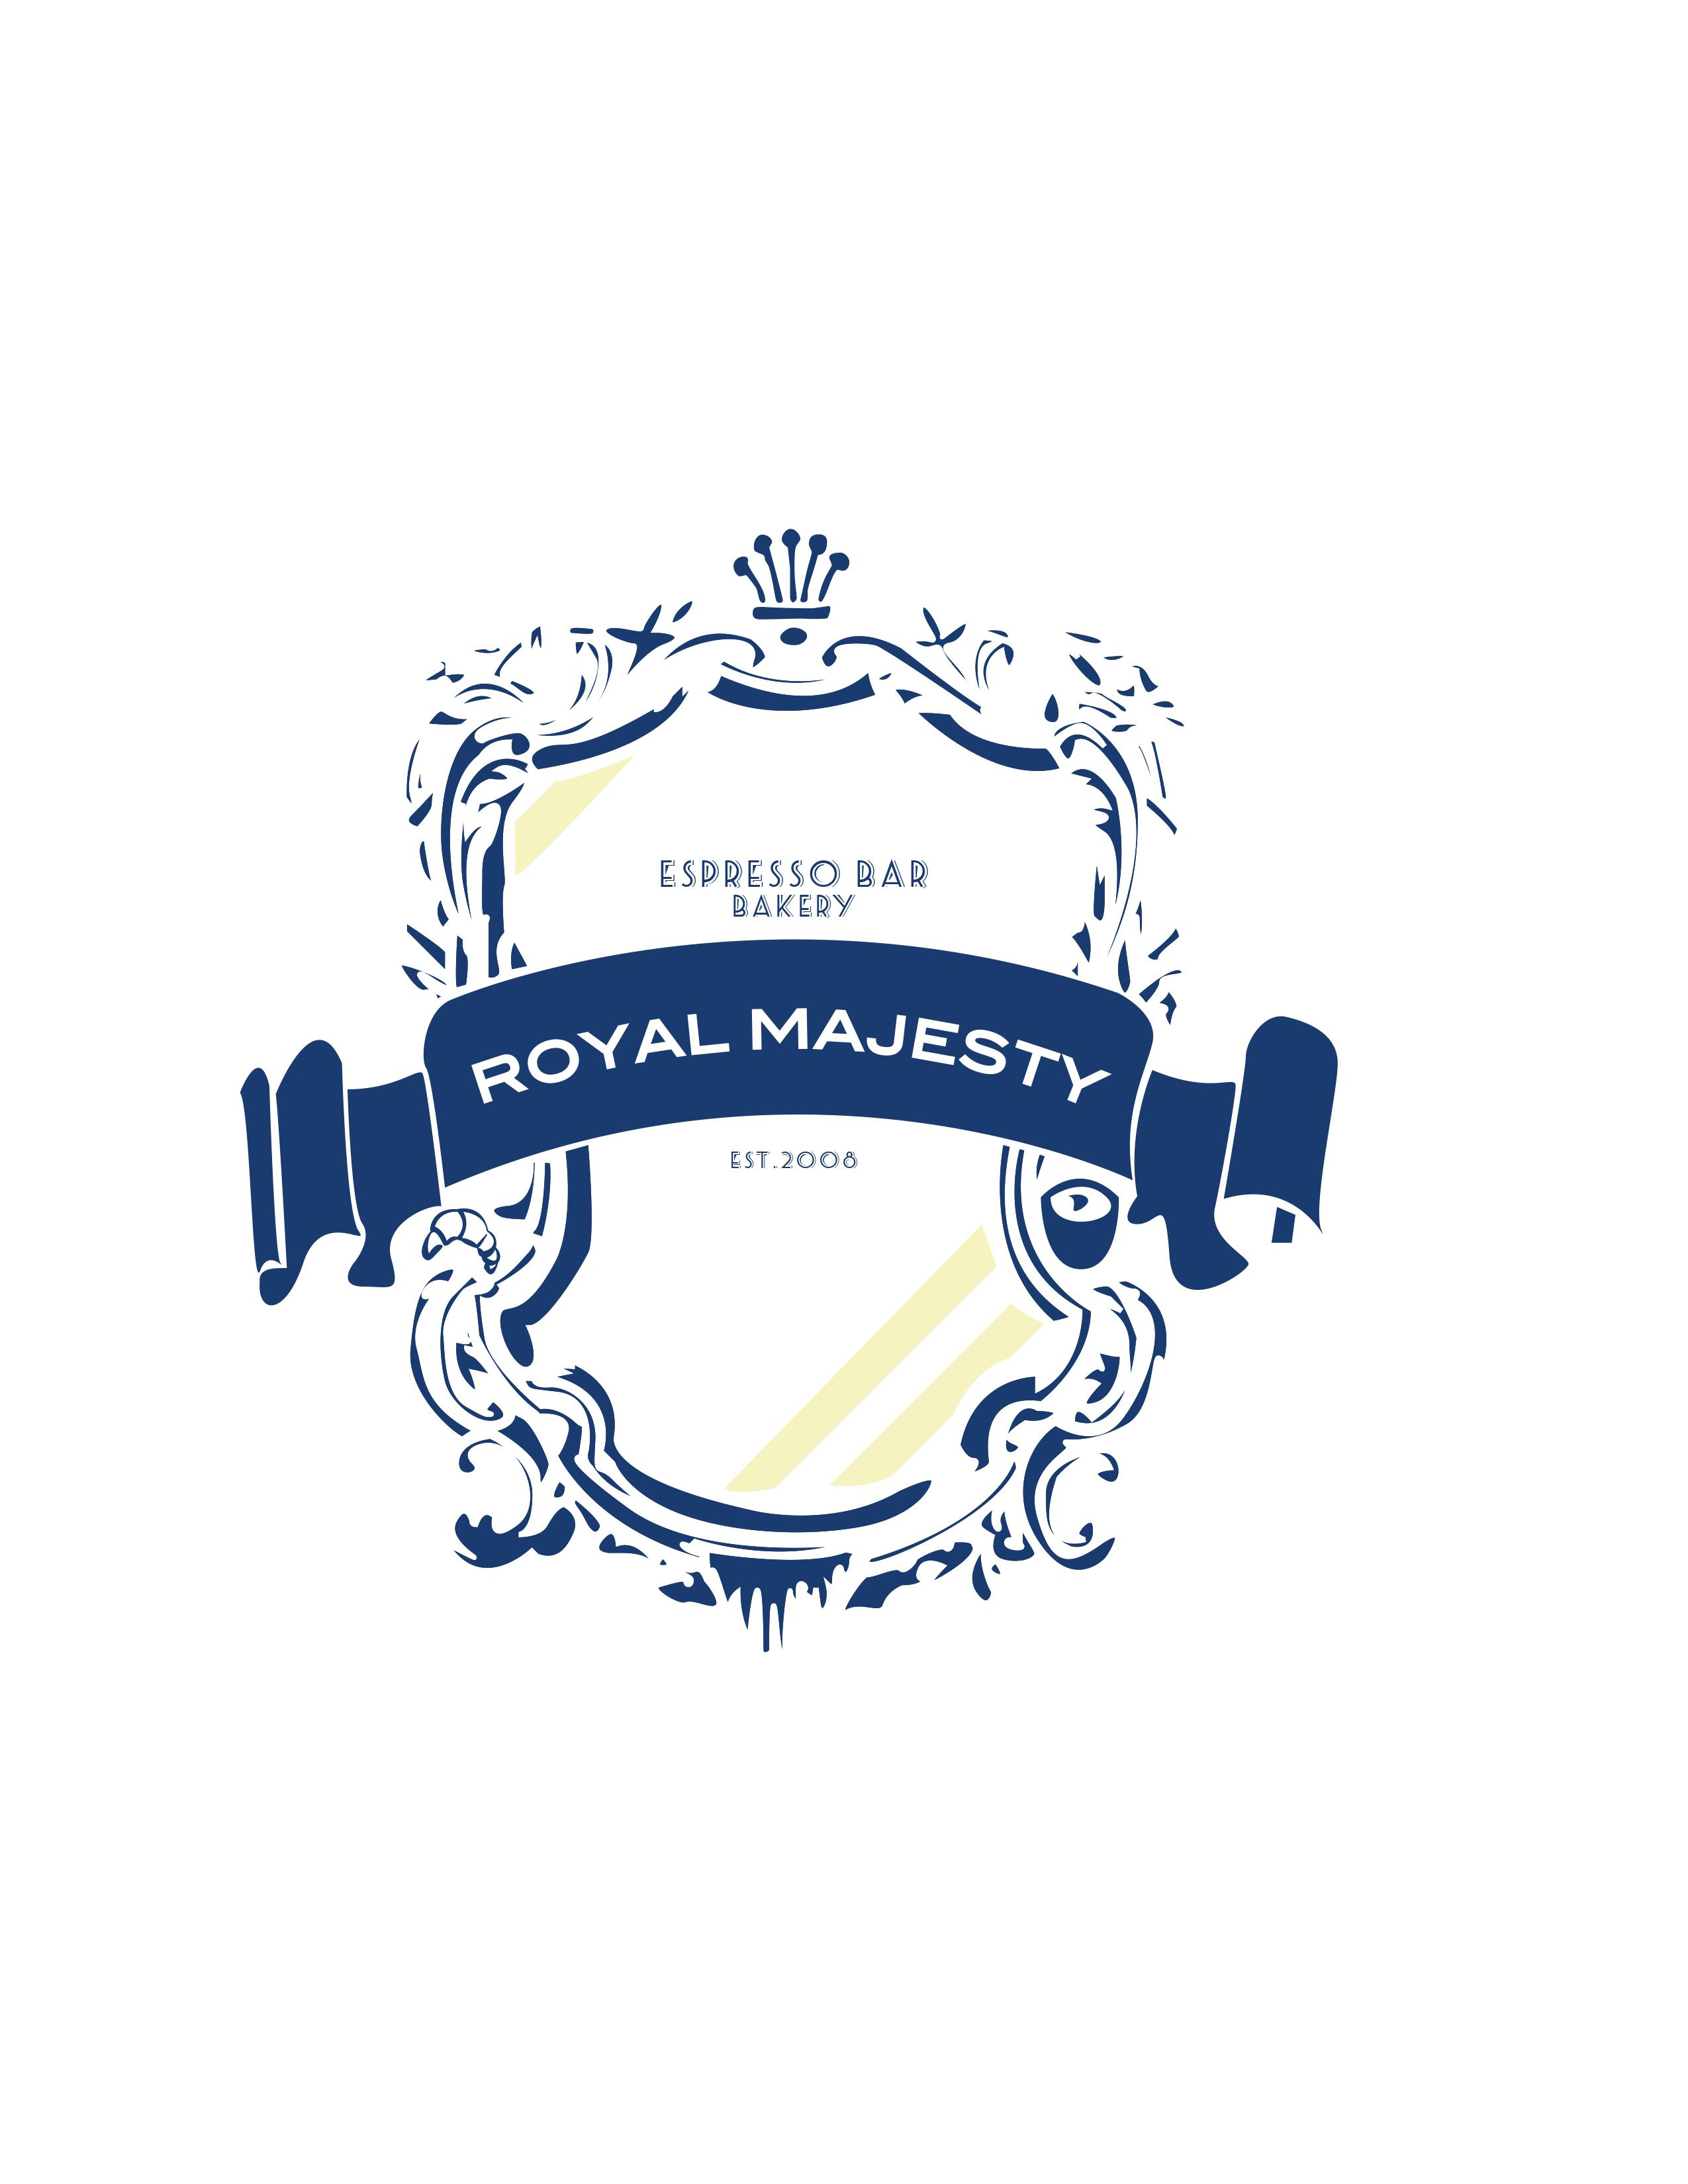 Royal Majesty Espresso